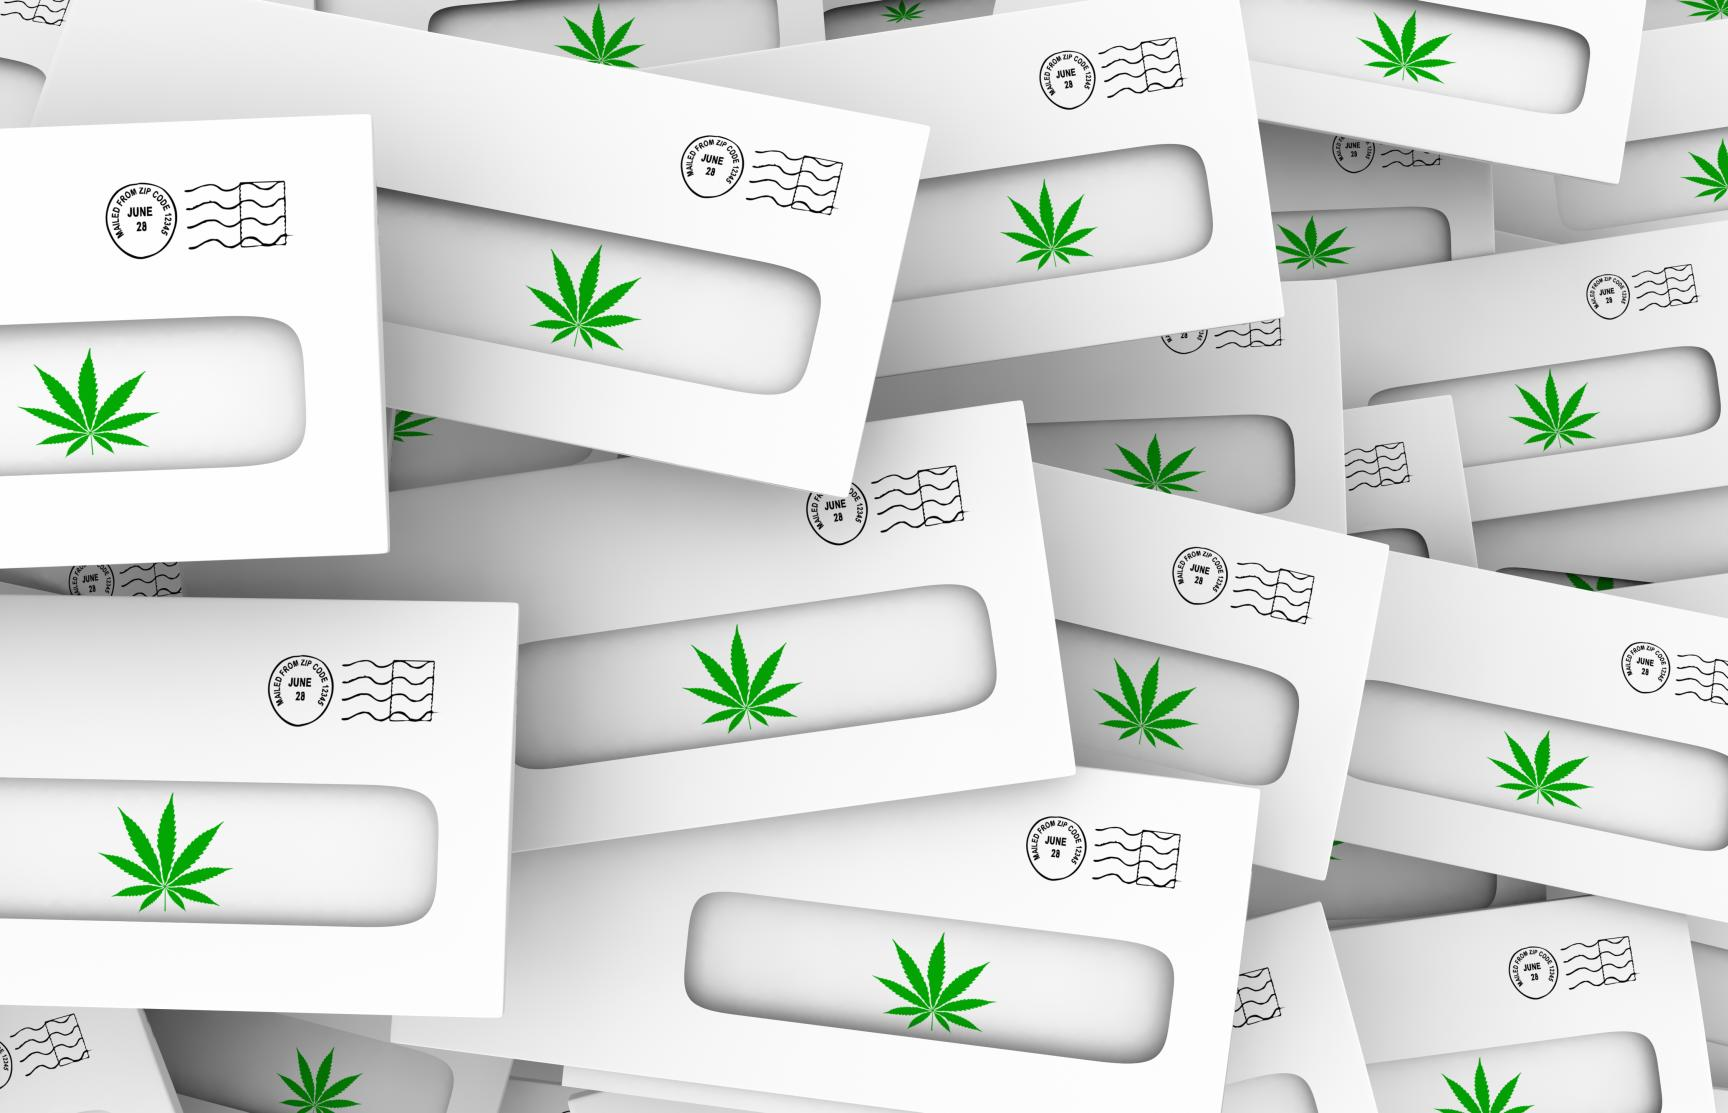 Selling Cannabis Online